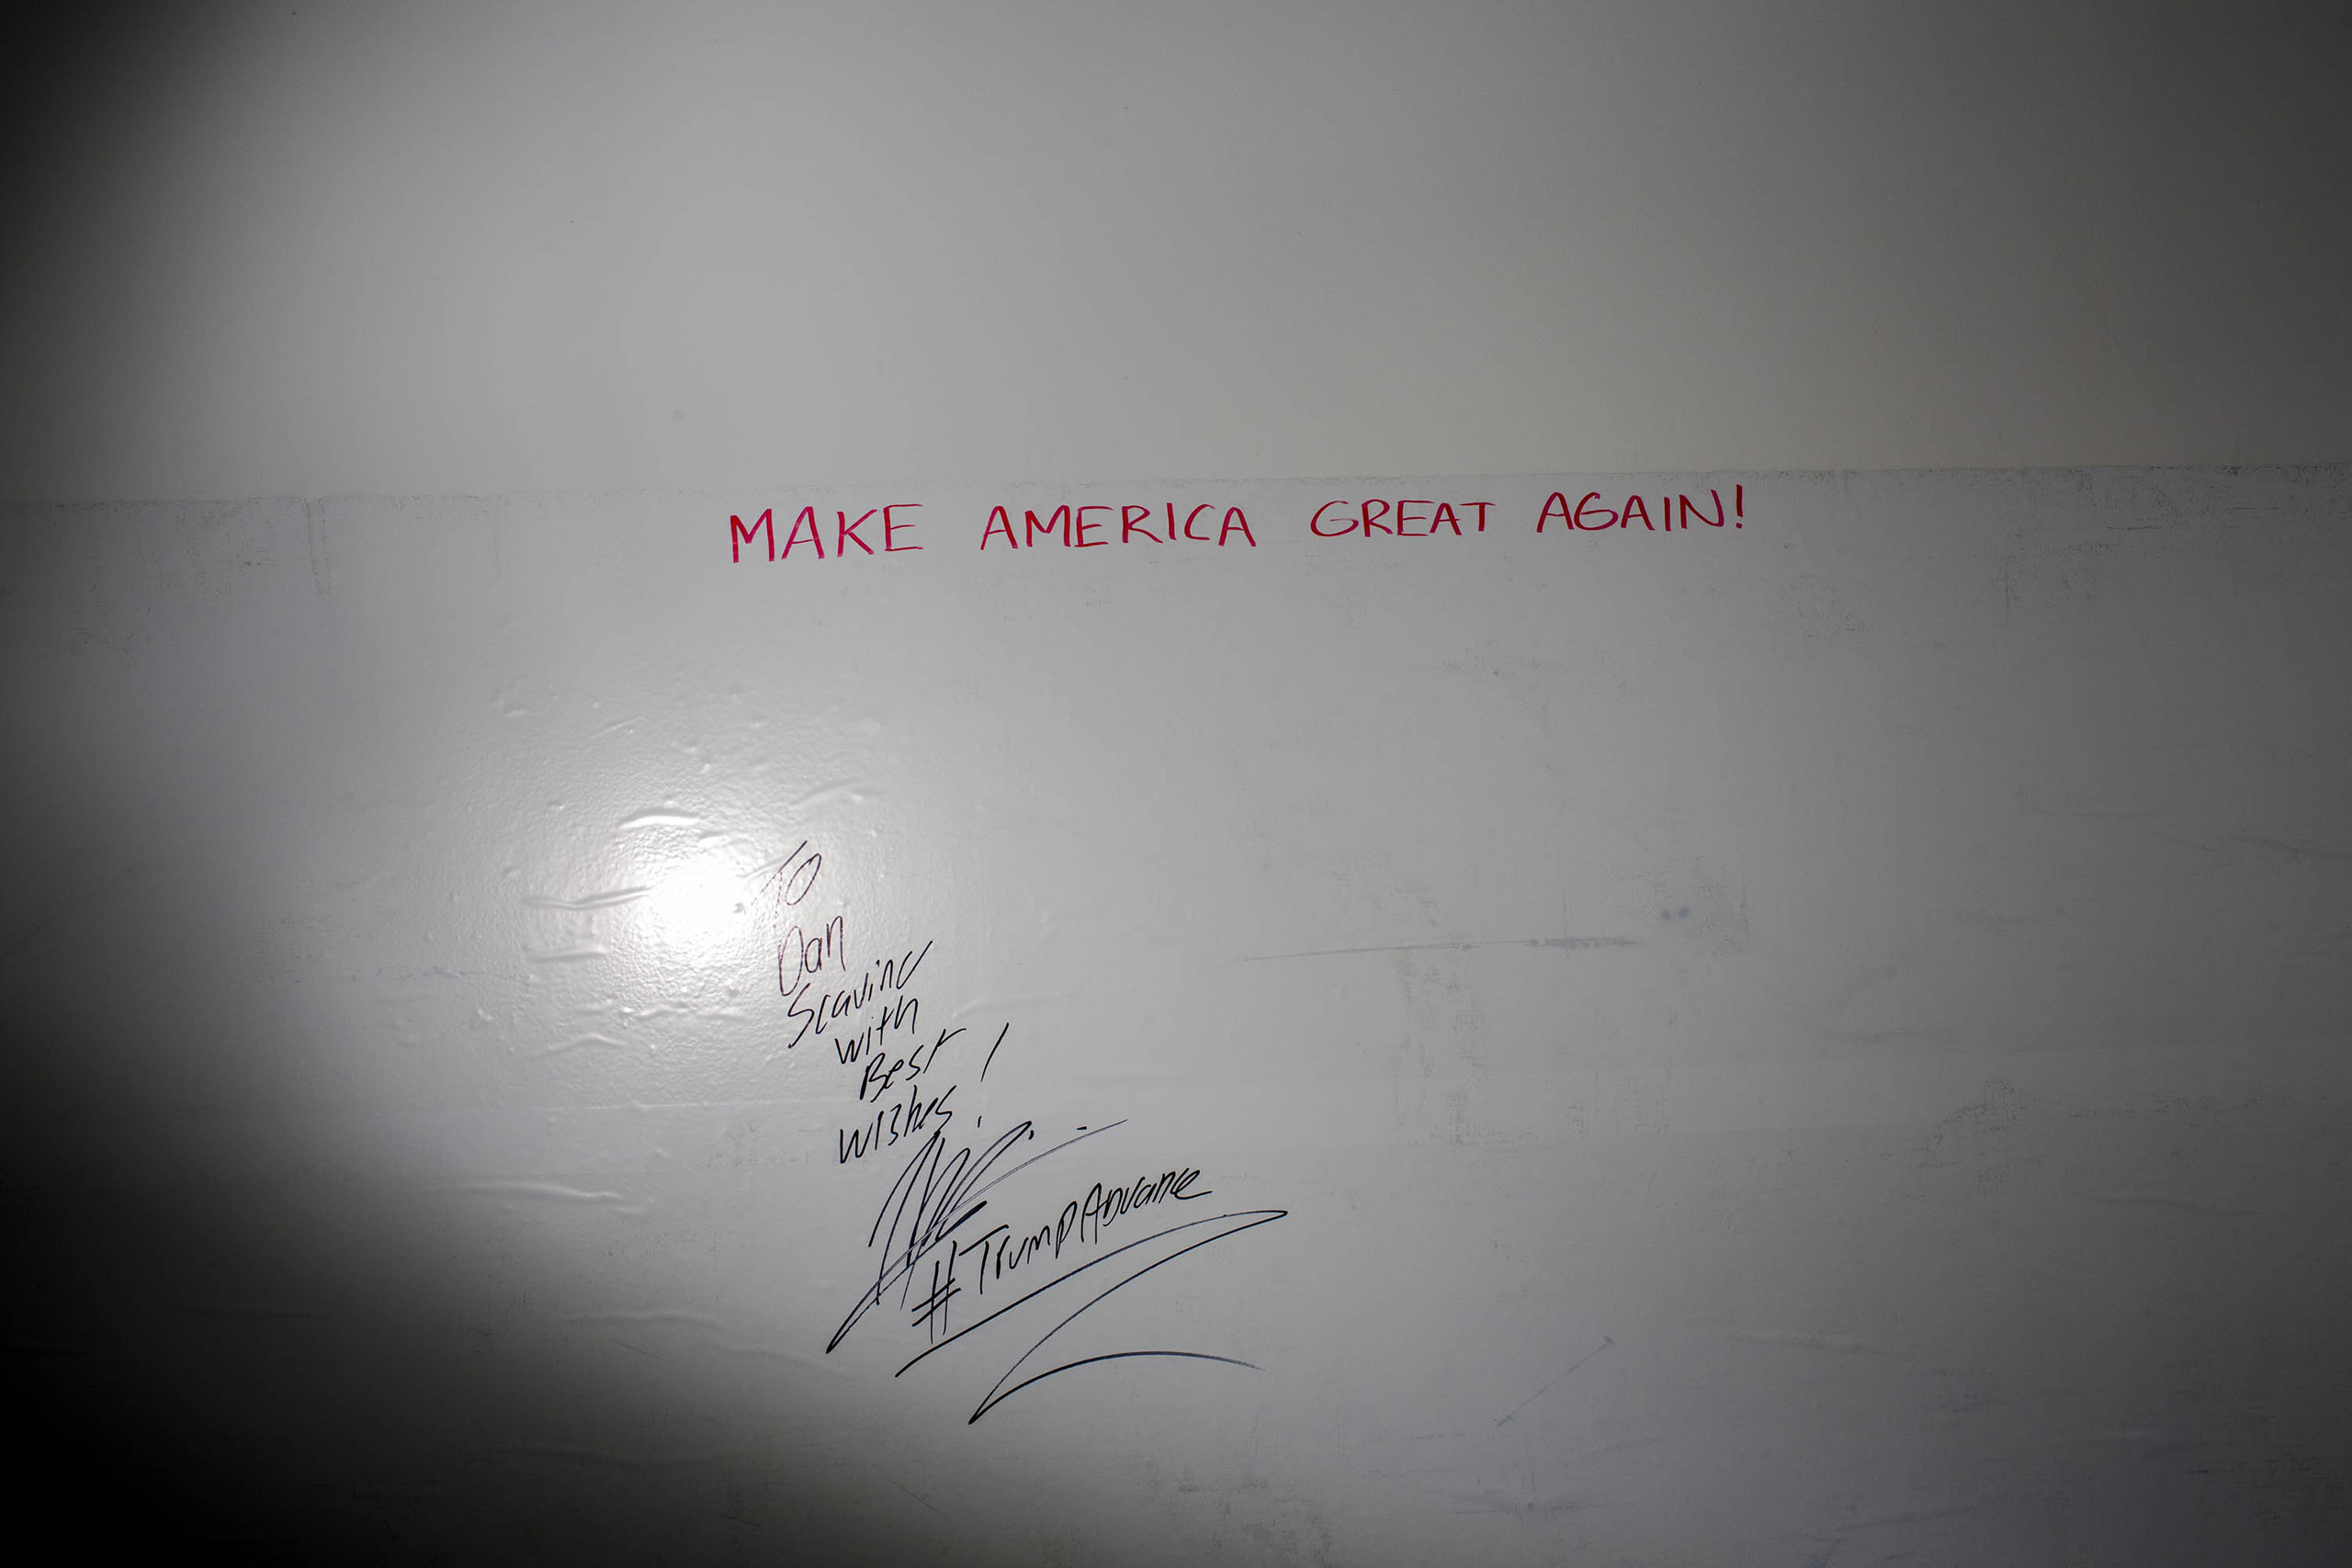 Donald Trumps campaign slogan on a wall inside the campaign headquarters on May 24, 2016, in Trump Tower, New York City.